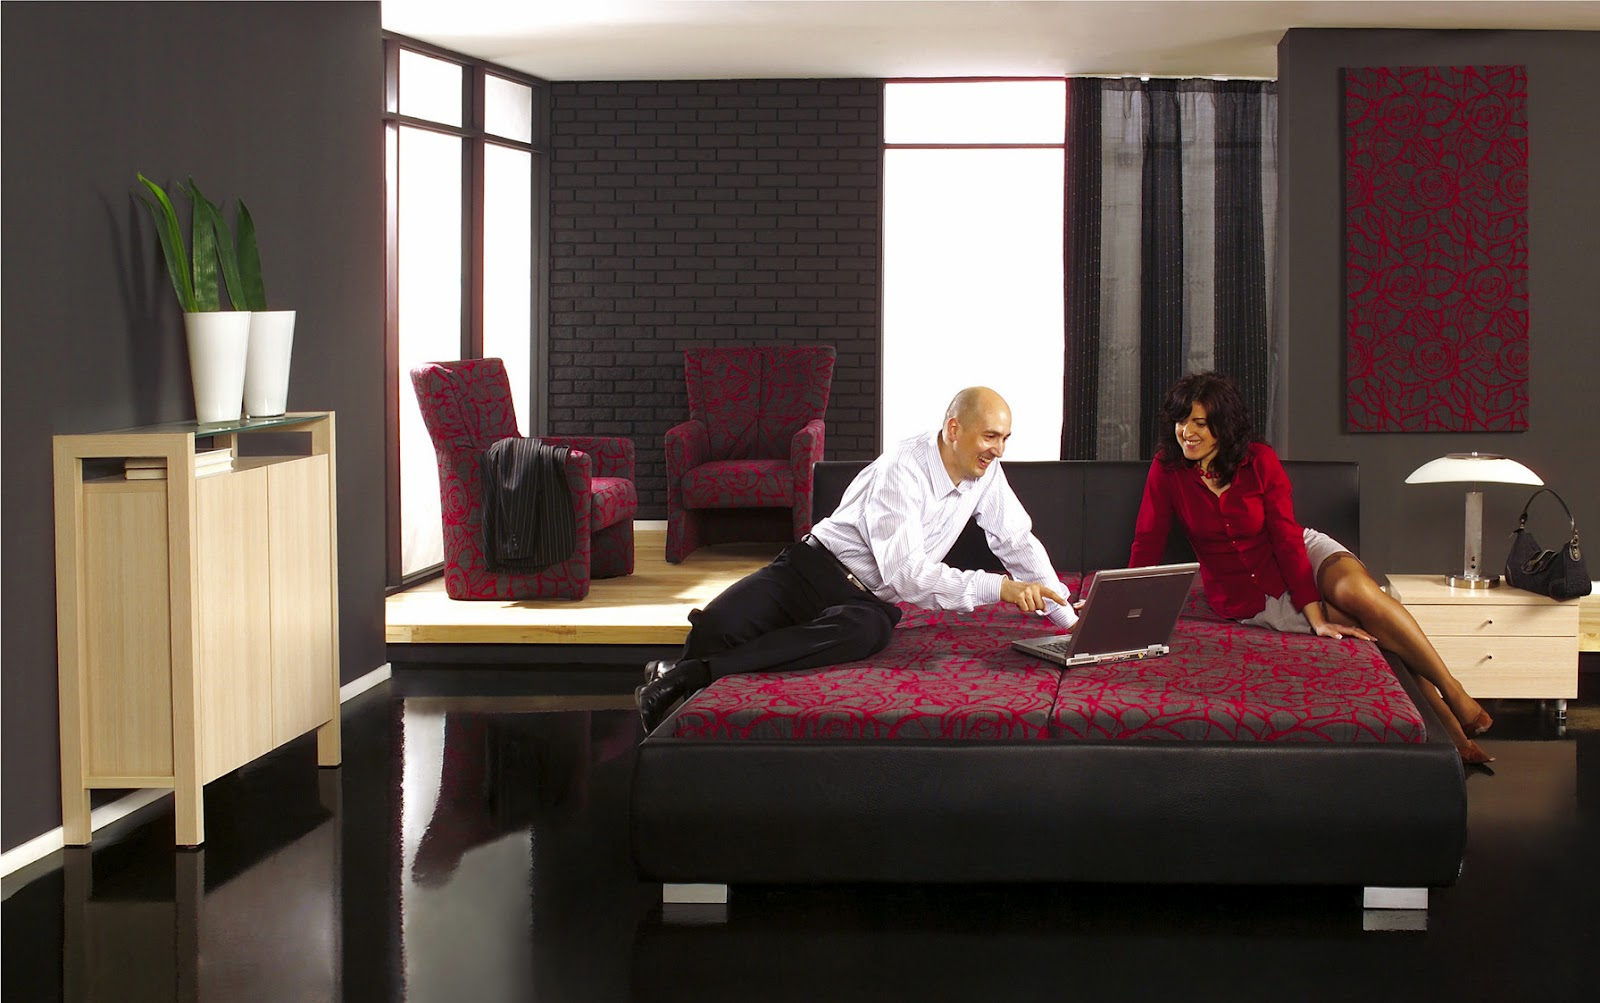 Luxury adult rooms ideas wonderful for Red and black bedroom designs